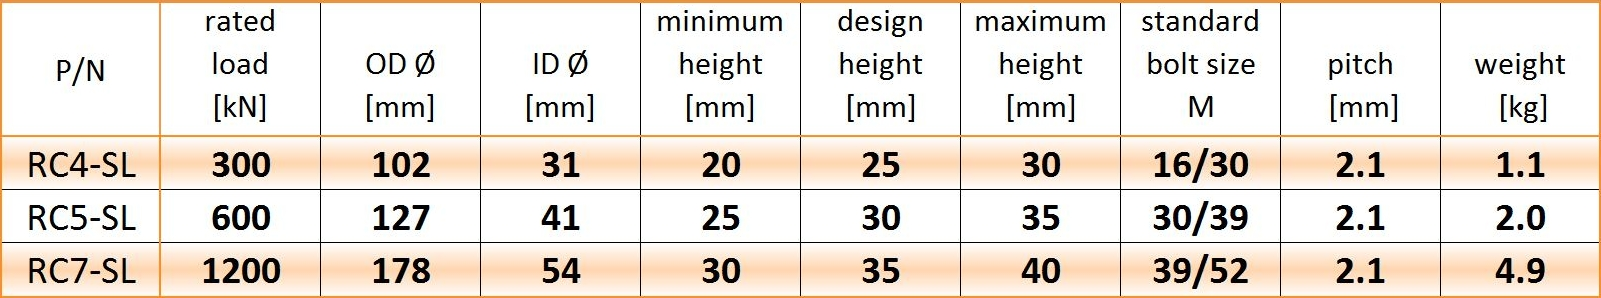 SL metric table 20-3-12.JPG